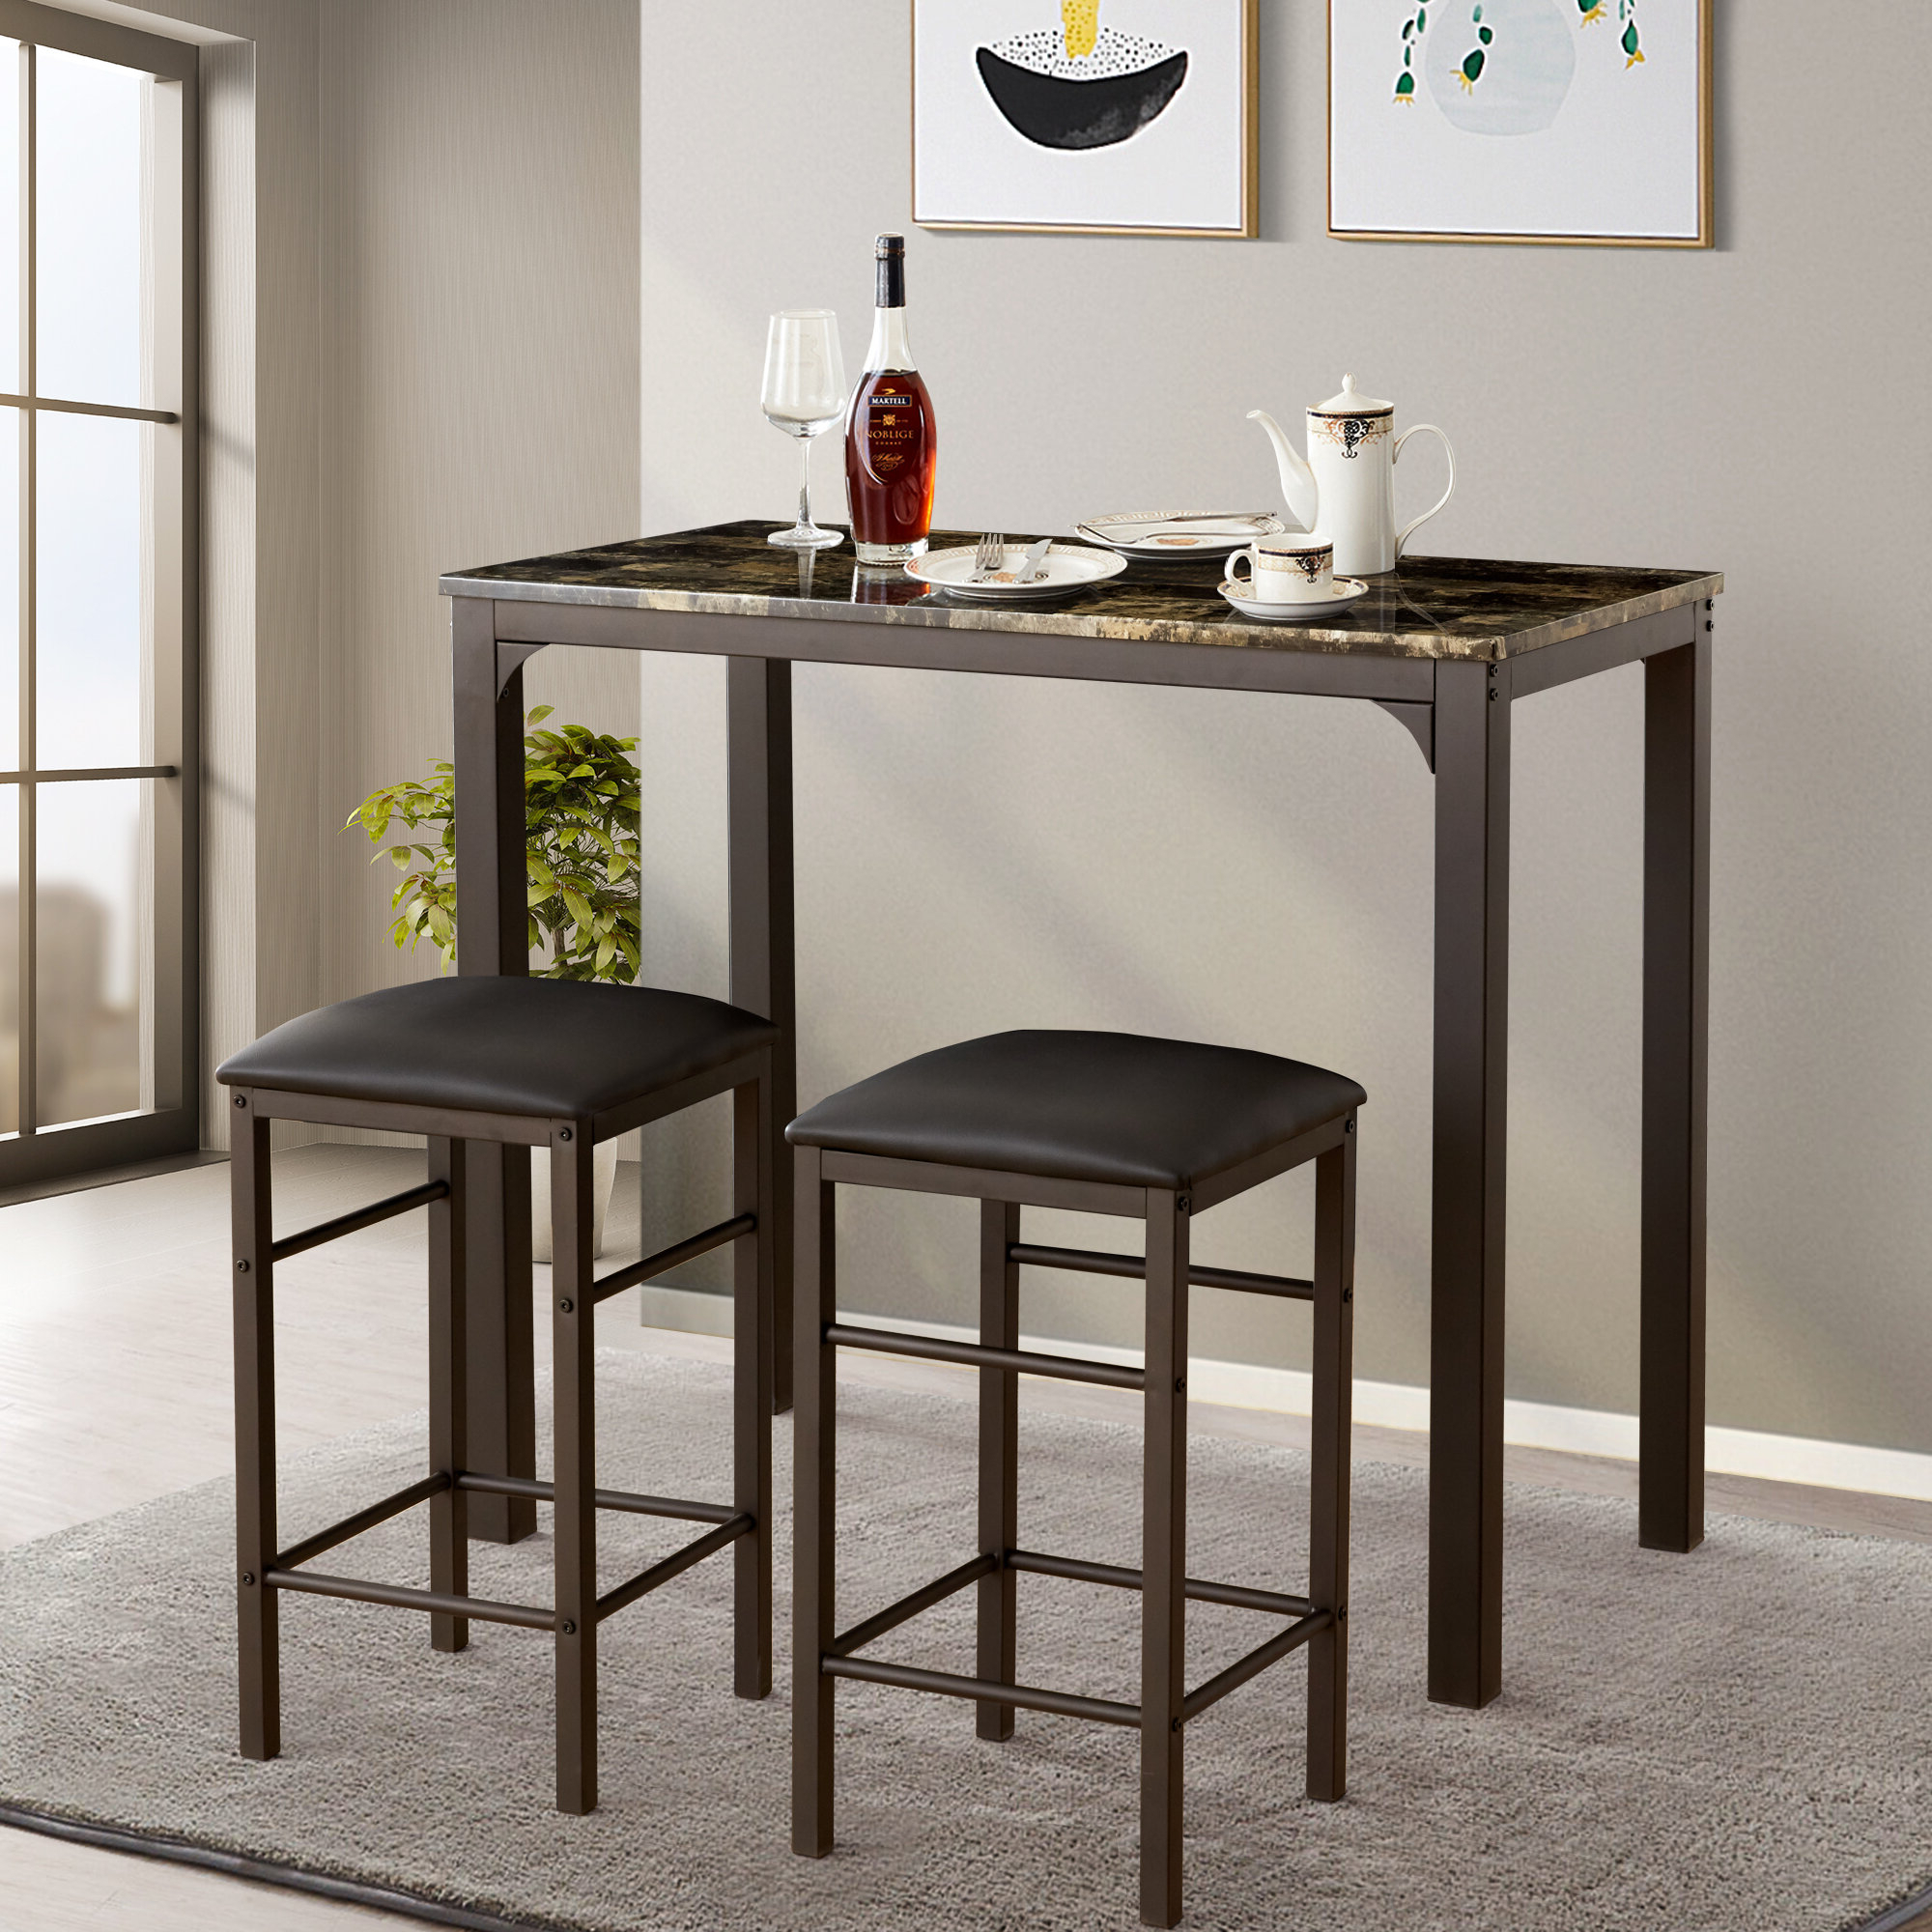 Best And Newest Tappahannock 3 Piece Counter Height Dining Set Inside Hood Canal 3 Piece Dining Sets (View 9 of 20)